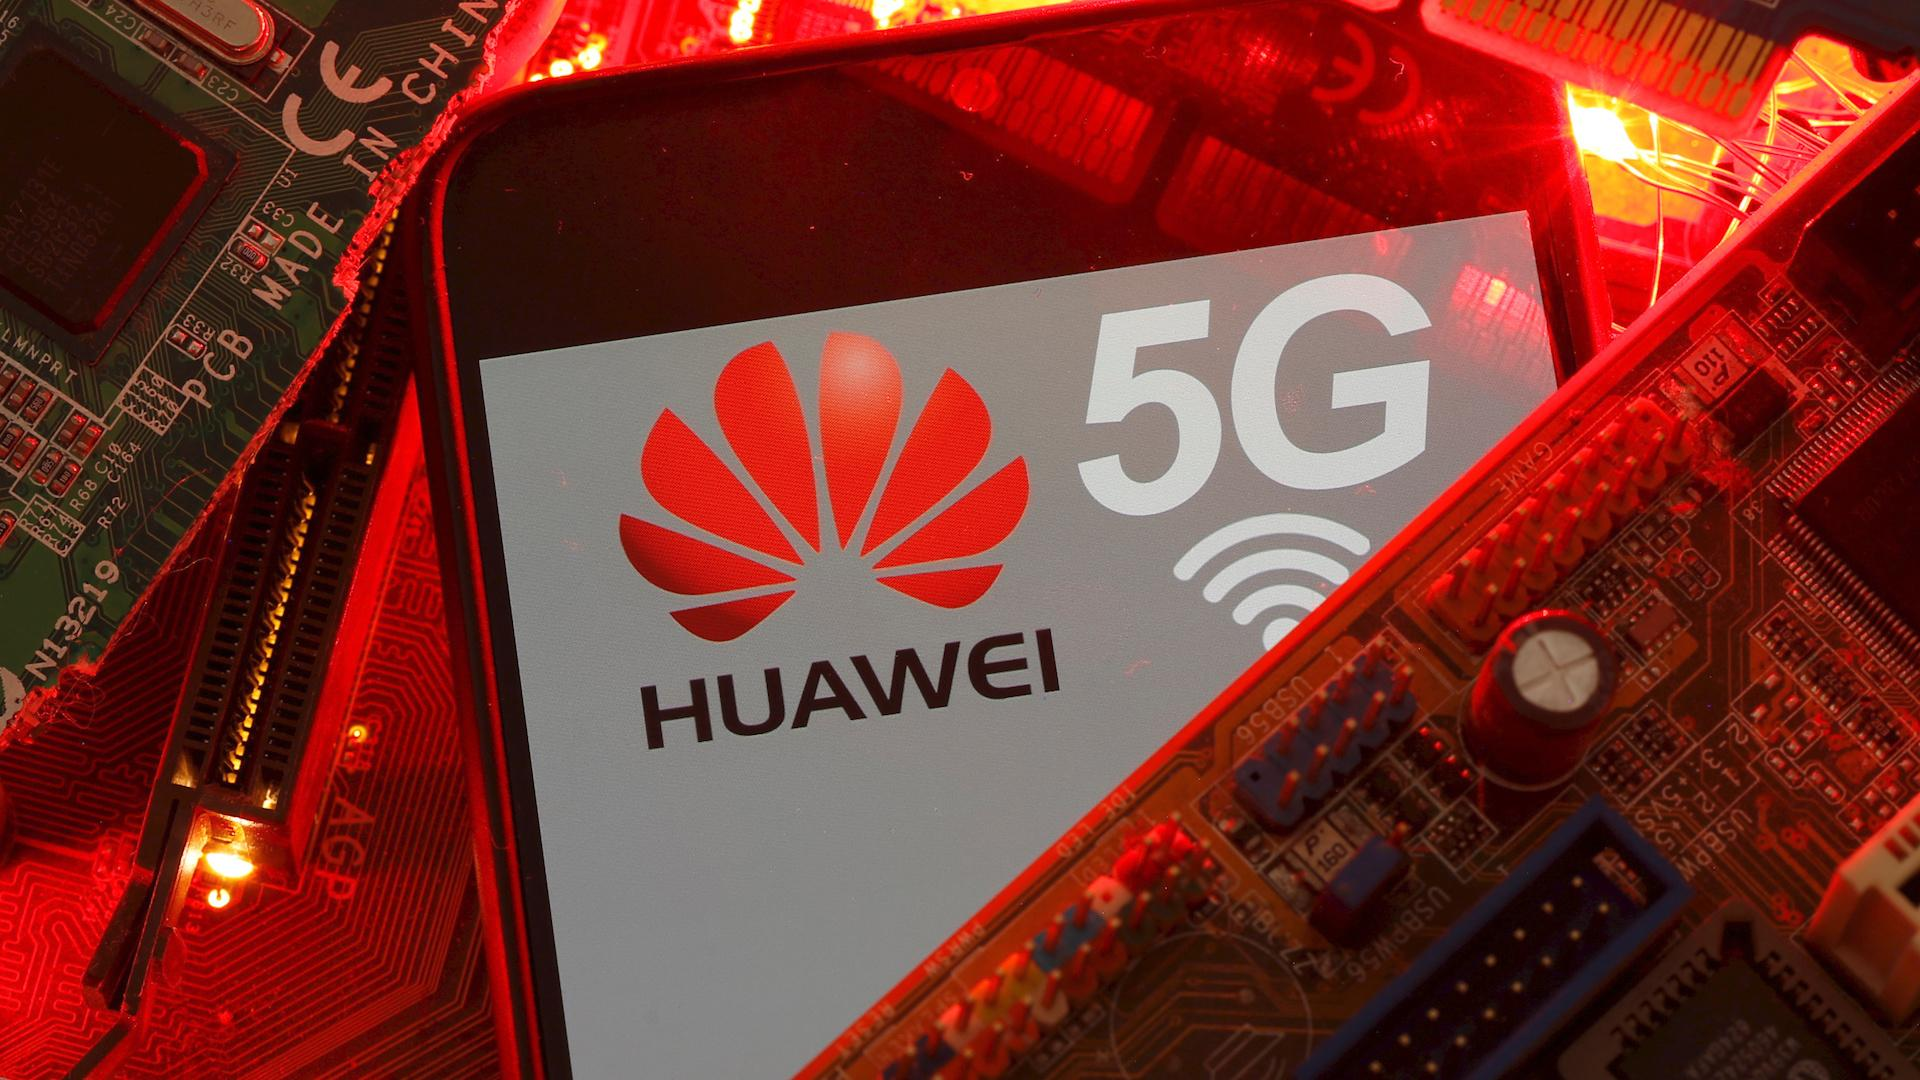 5G: Does Huawei 5G pose a national security risk?